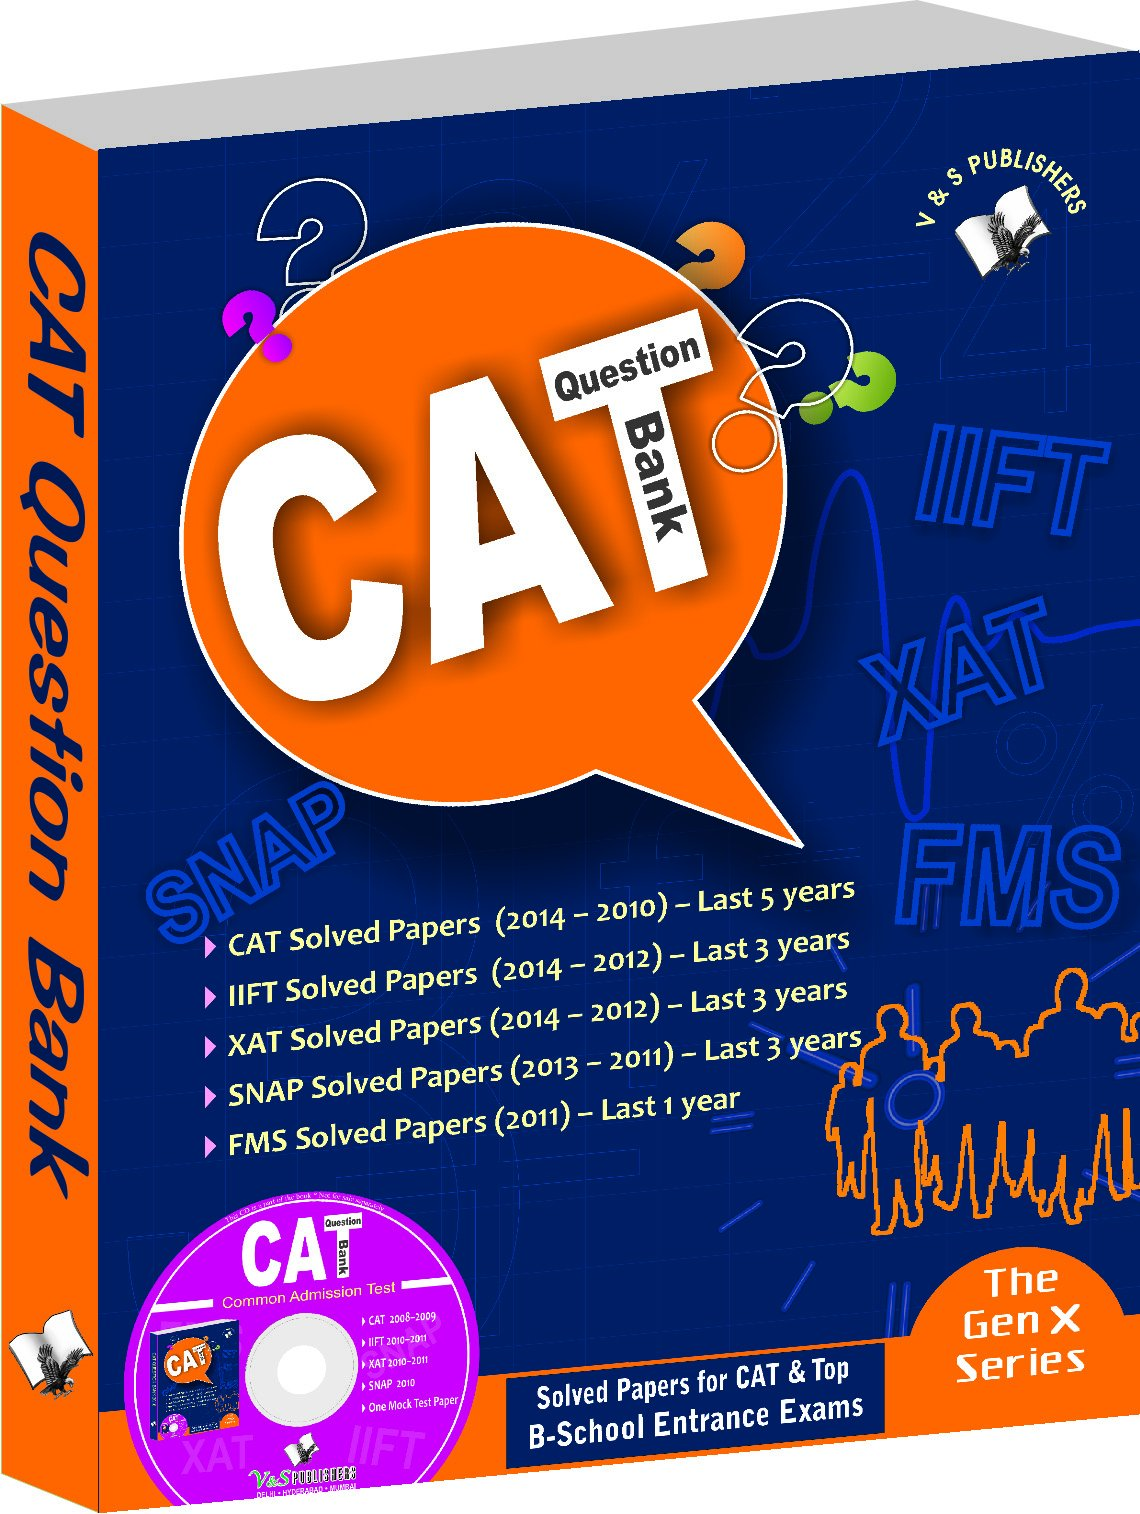 CAT Question Bank 2015 (with CD) pdf